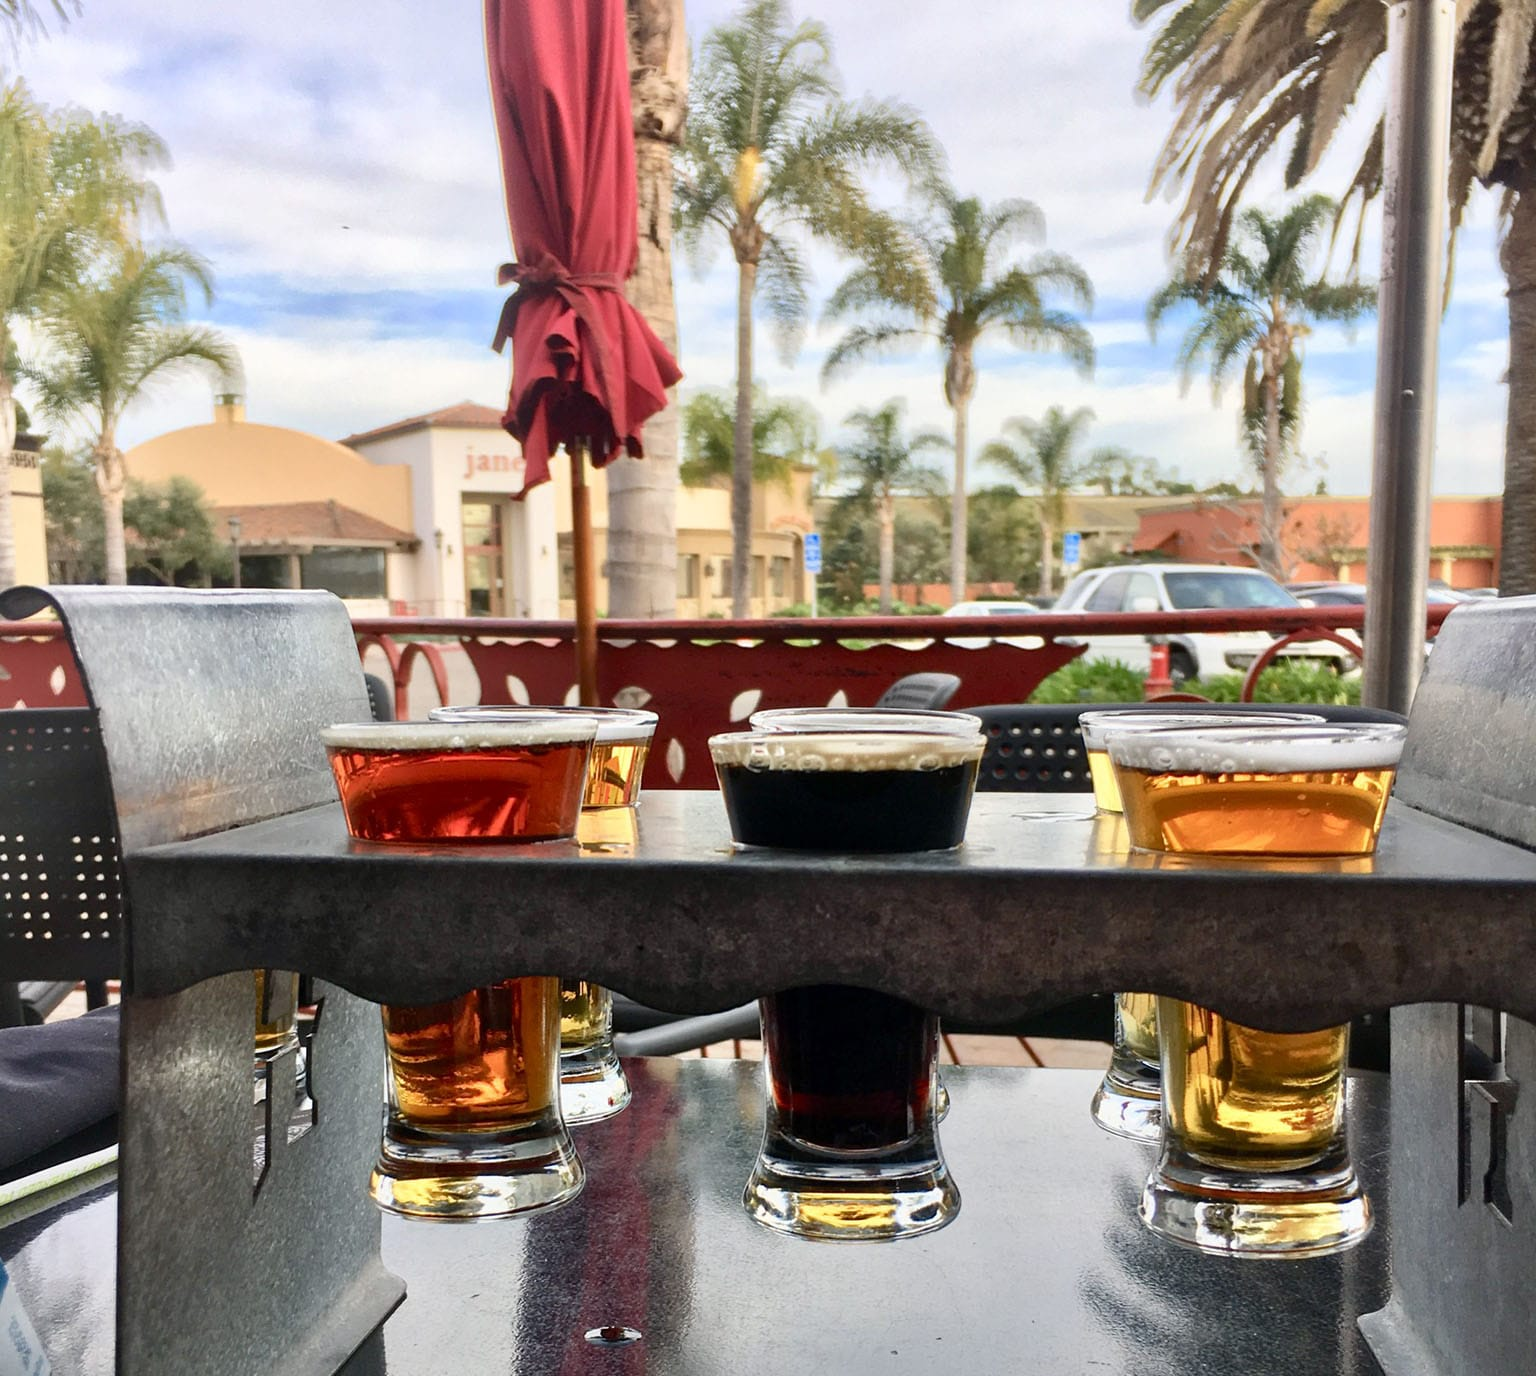 Beer sampler on outdoor patio at Hollister Brewing Co